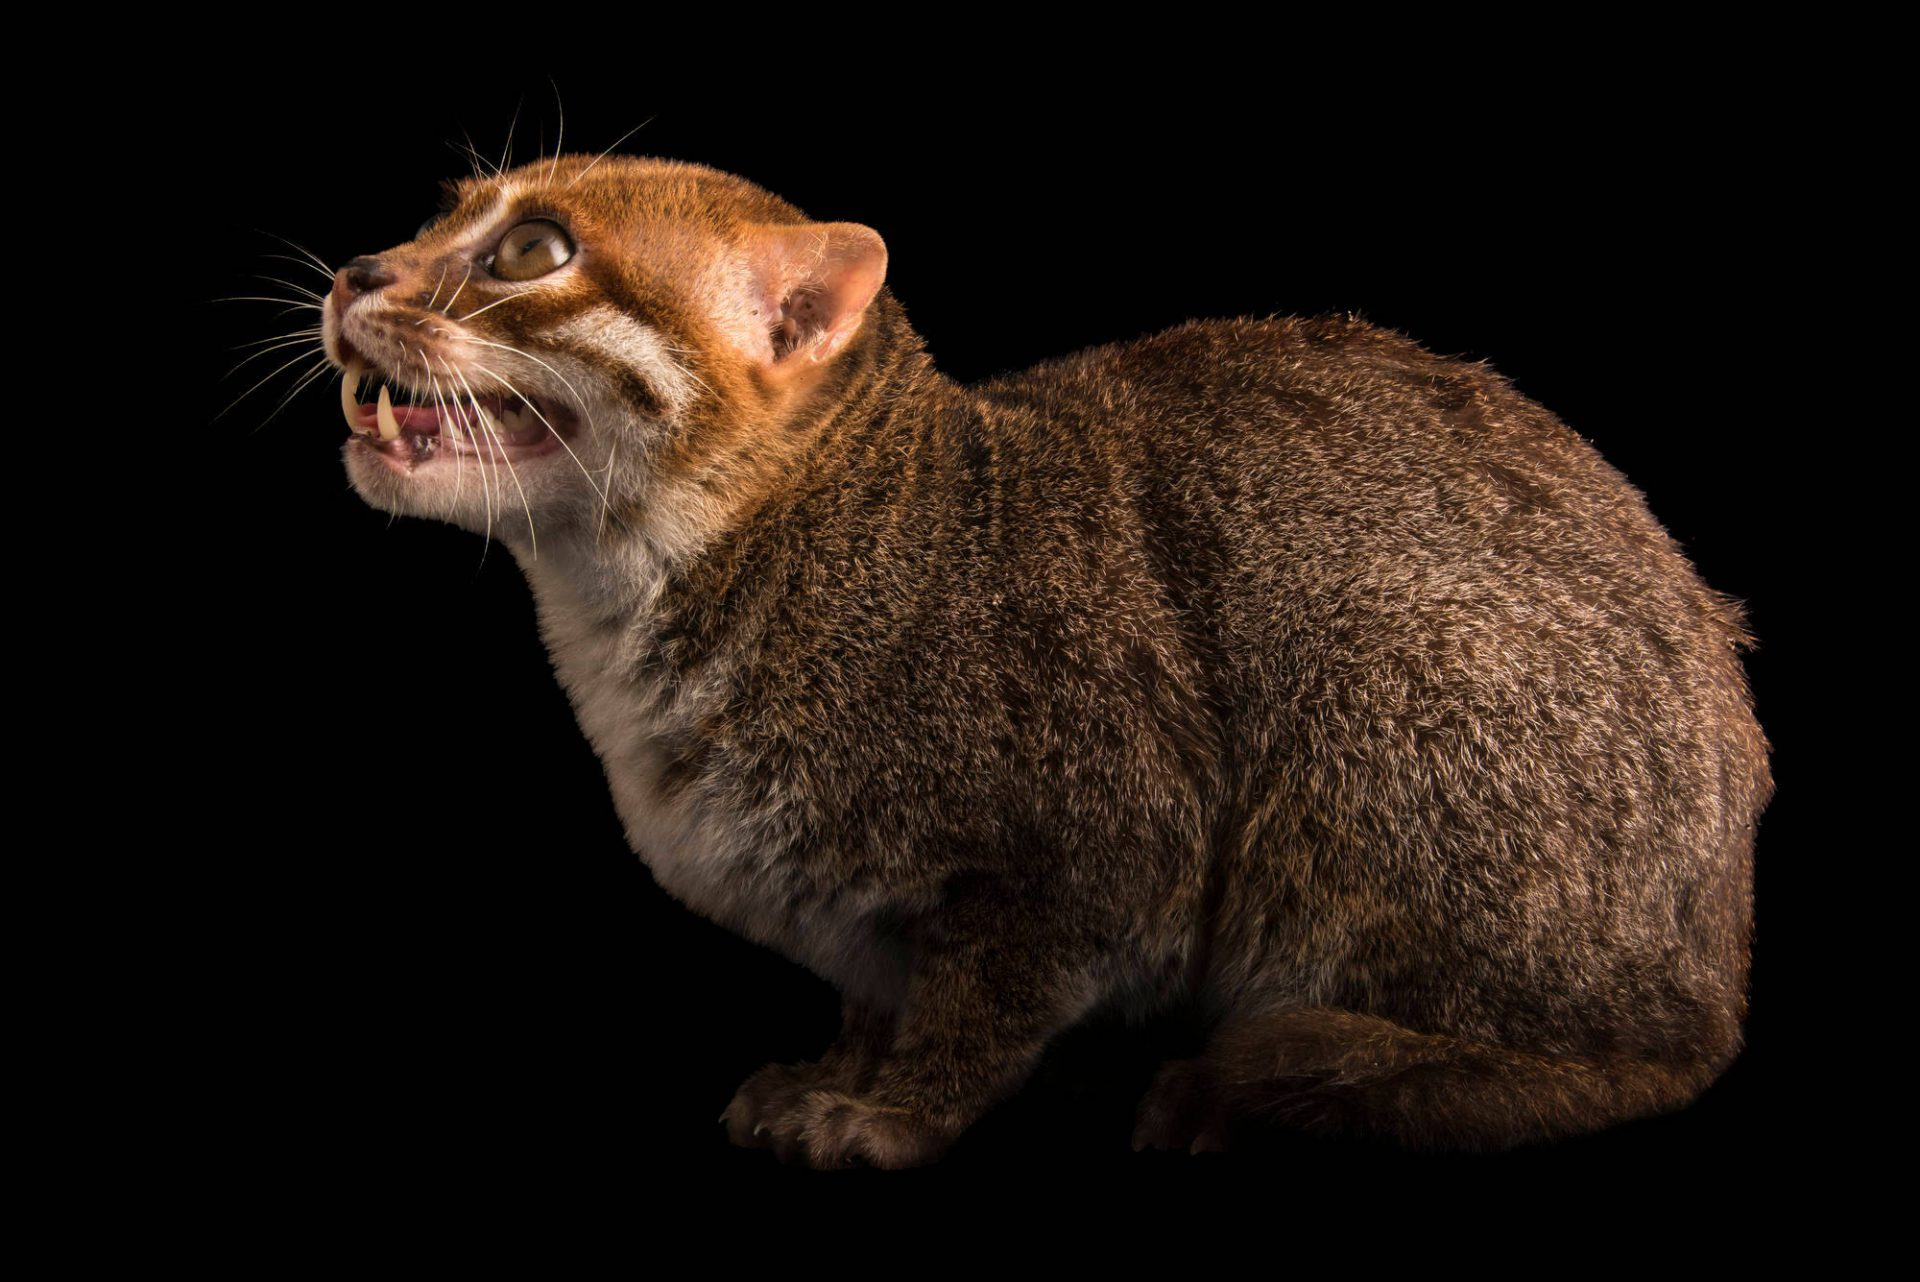 Photo: An endangered flat-headed cat (Prionailurus planiceps) at the Taiping Zoo.